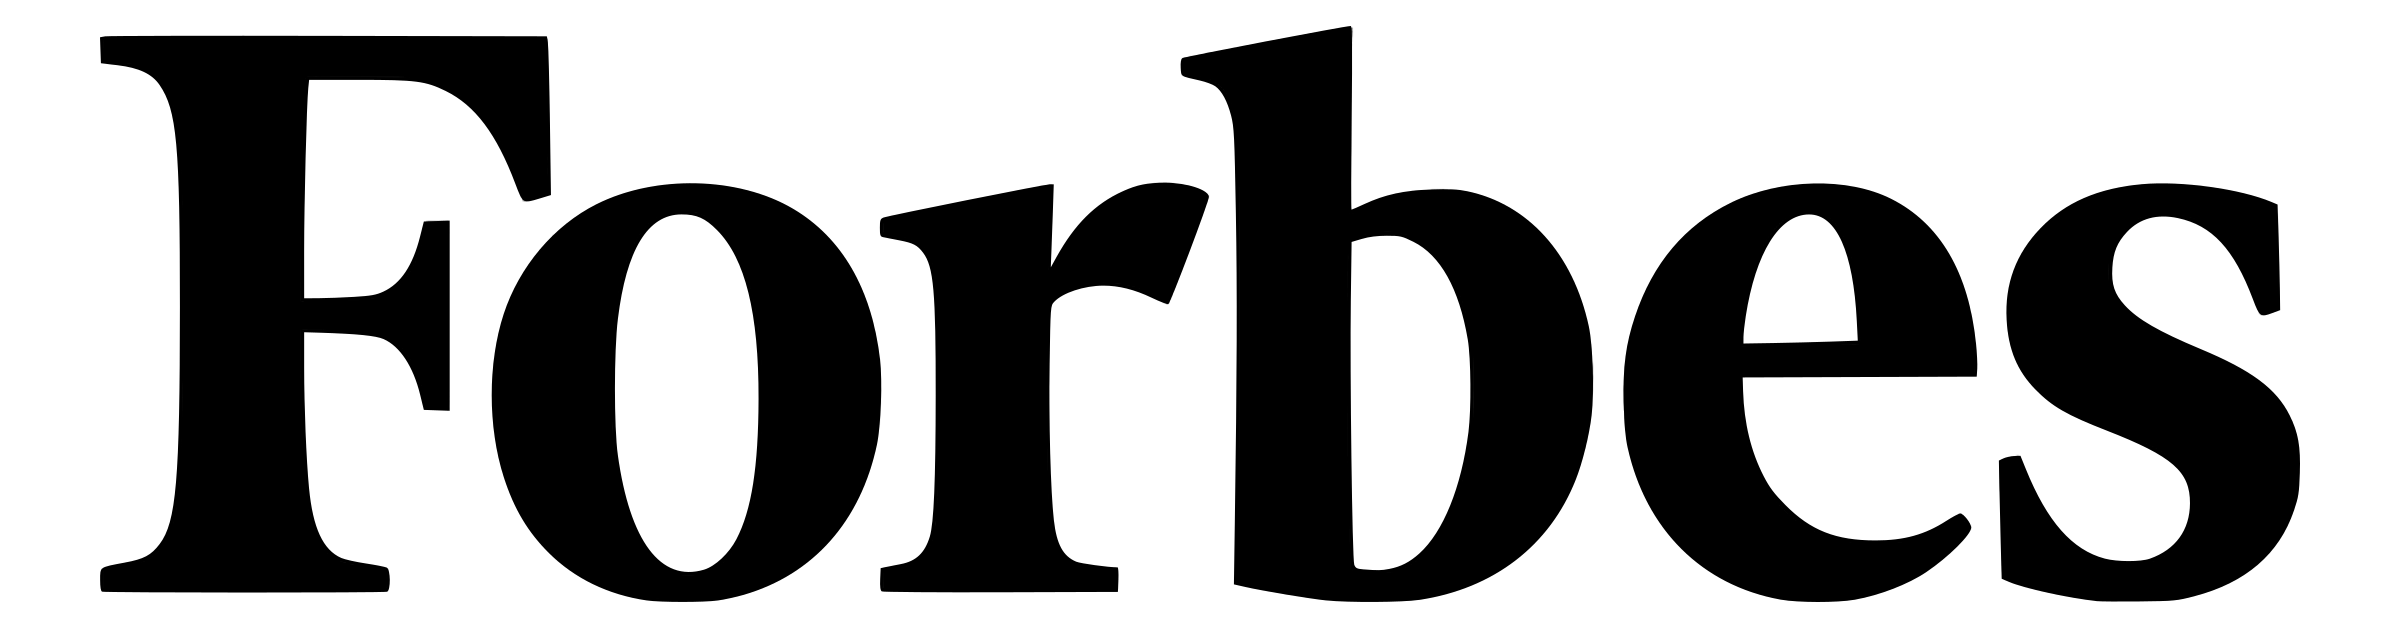 https://wordplayagency.com/wp-content/uploads/2019/03/forbes-logo.png